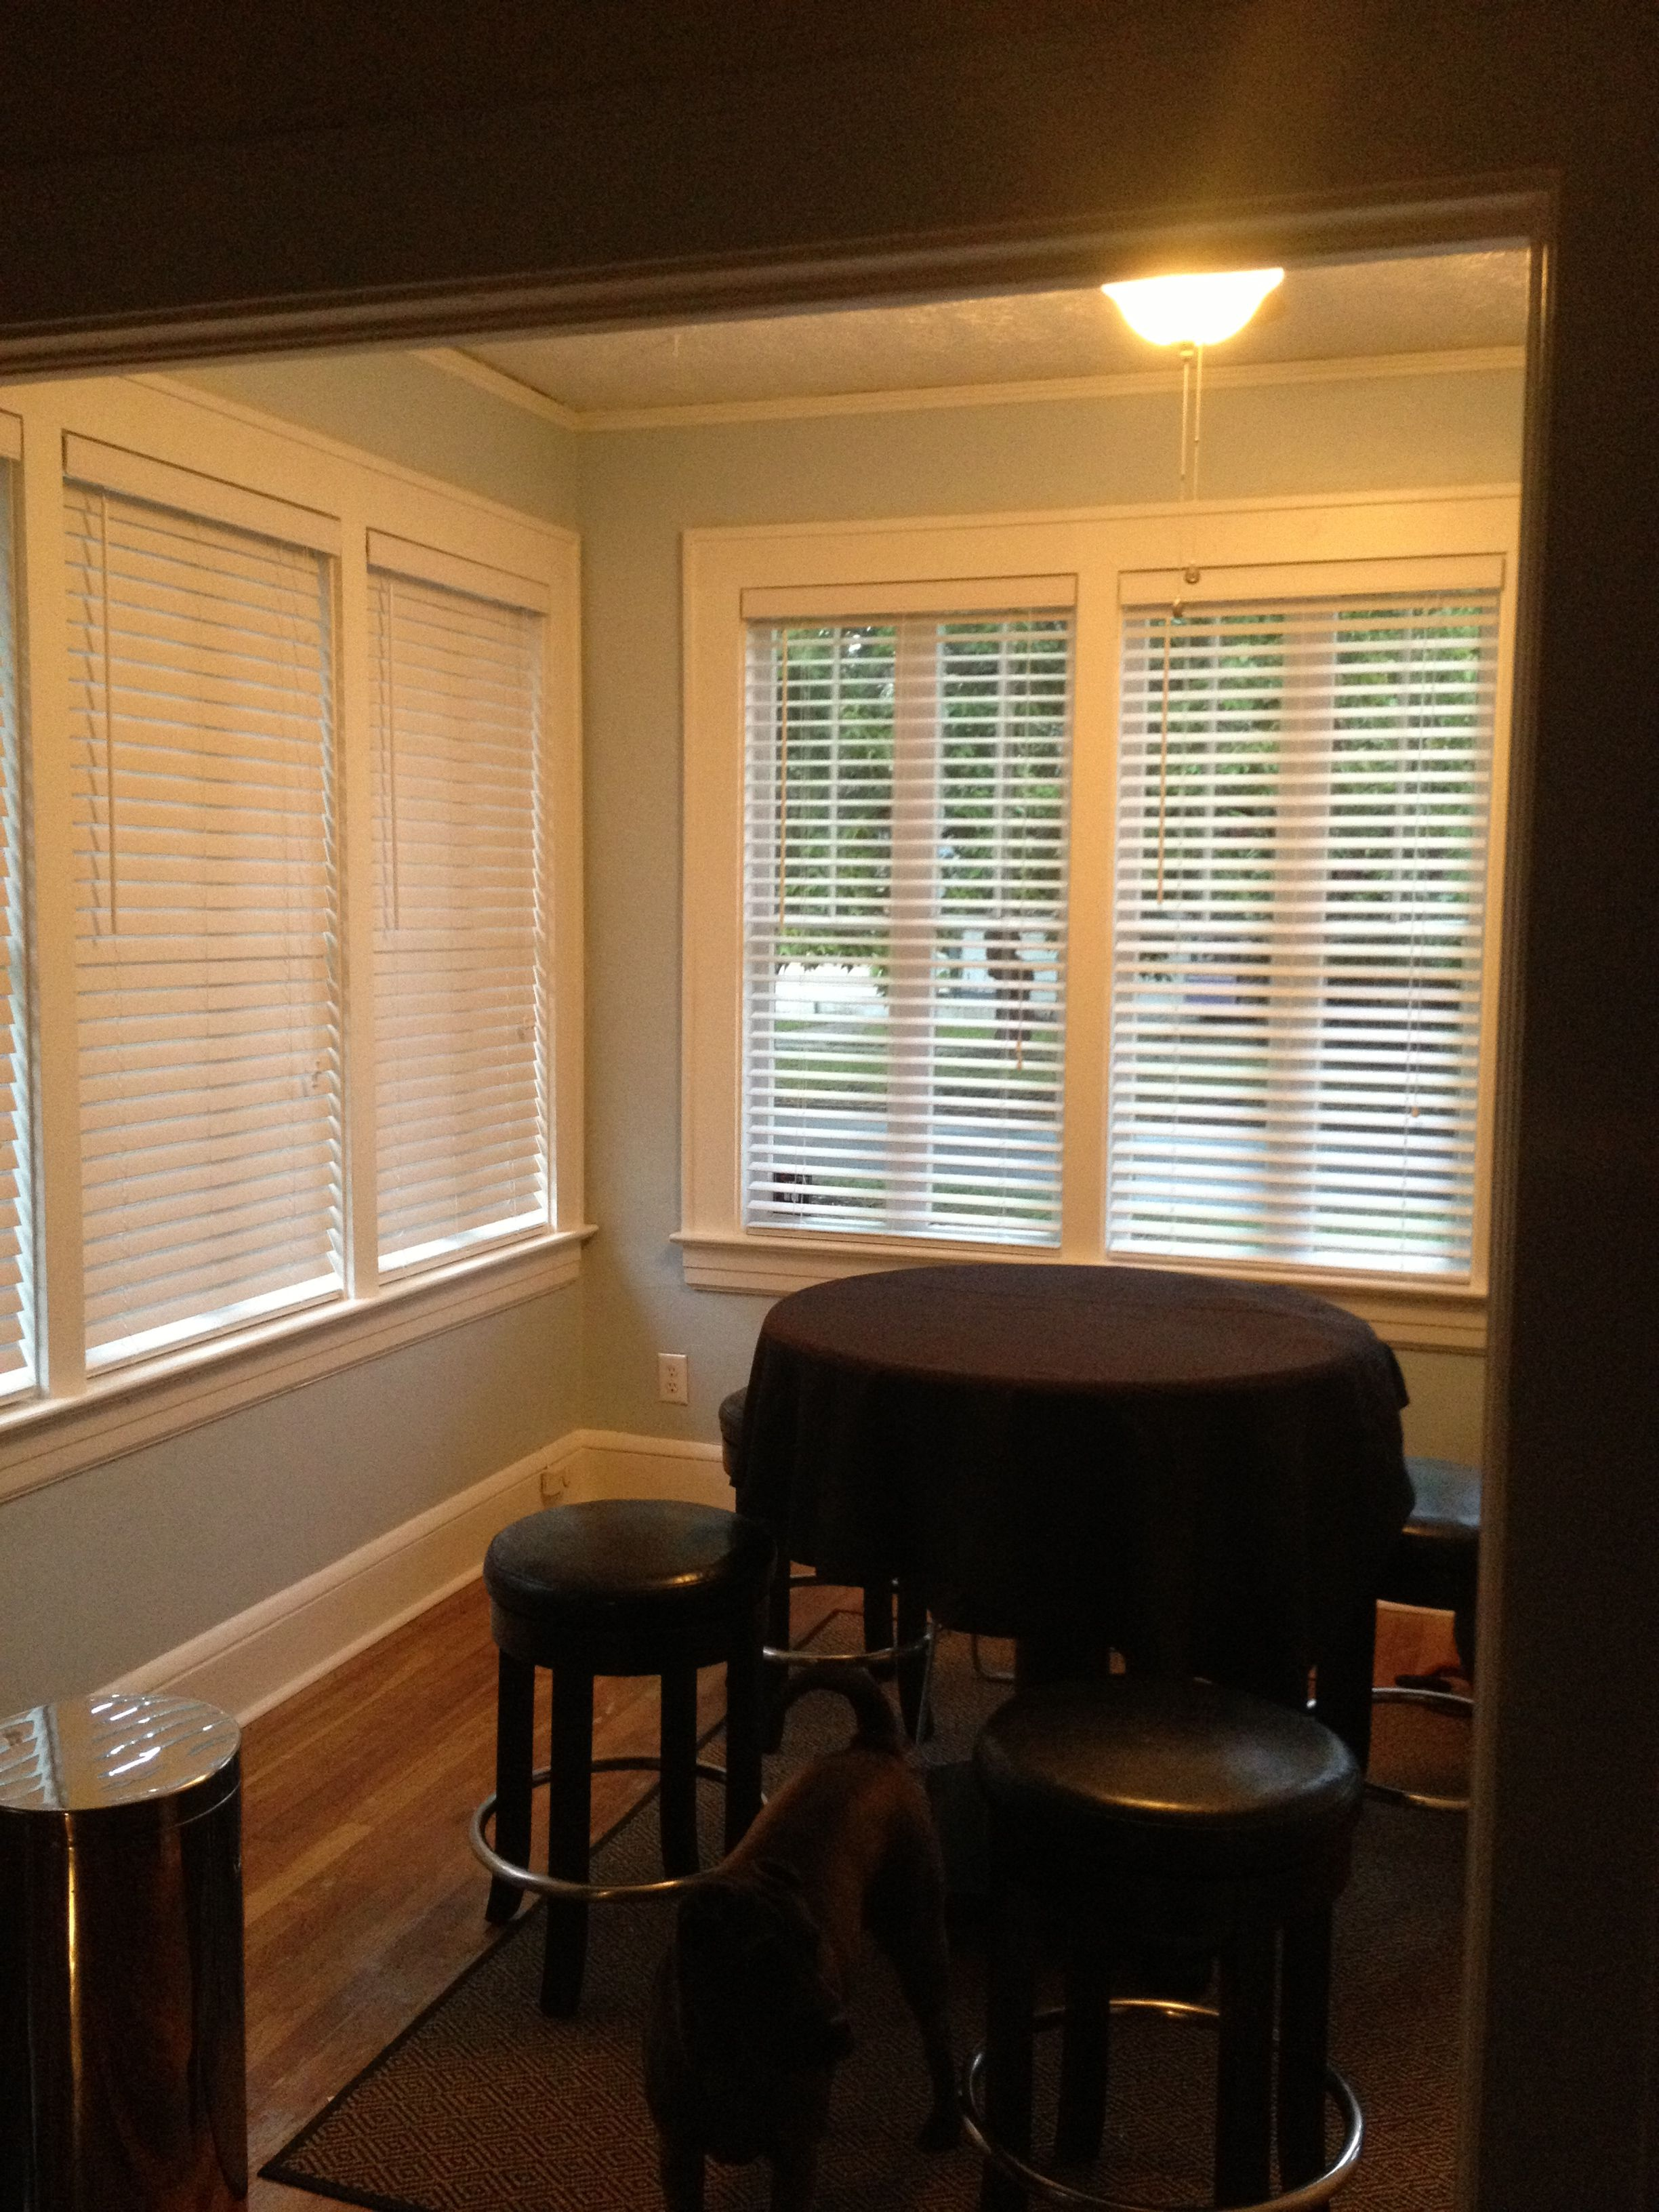 Sunroom Or Florida Room Color Sherwin William Hgtv Satin Color Balmy And White Trim Florida Room Room Colors House